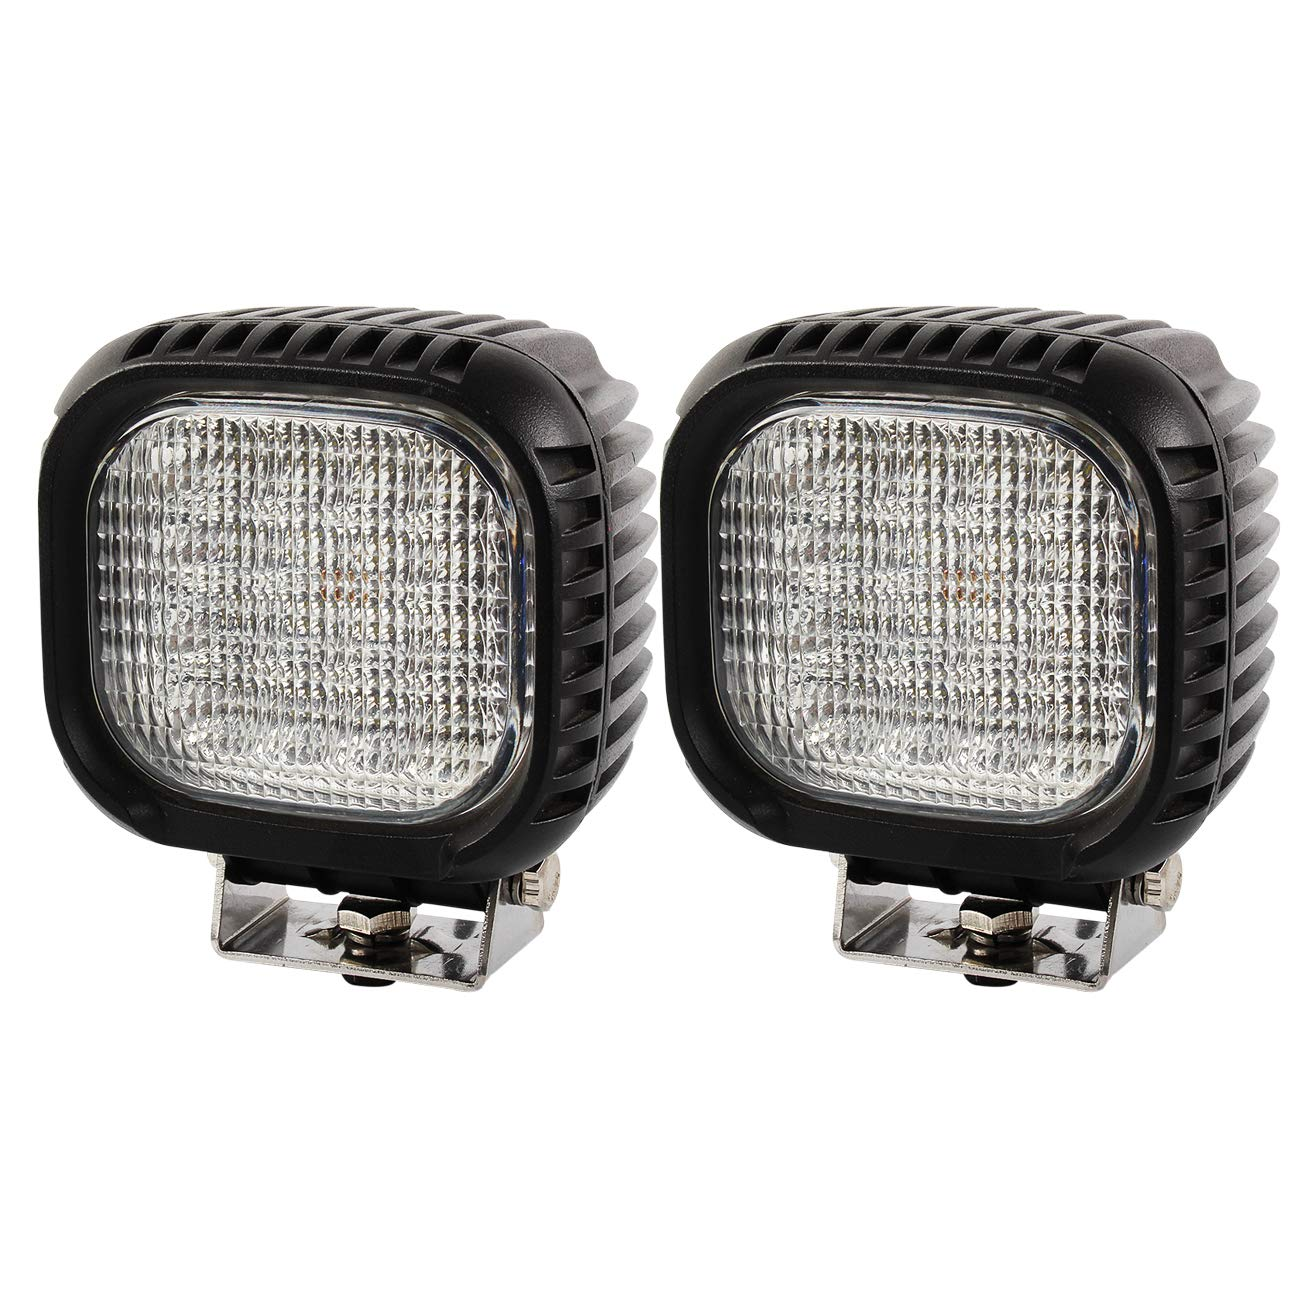 black 12.00 voltsV brightum 48/ W Cree Off-Road LED Work Lights 12/ V 24/ V Reflector Worklight Work Light SUV UTV ATV Work Light Lamp Tractor Digger Truck Car